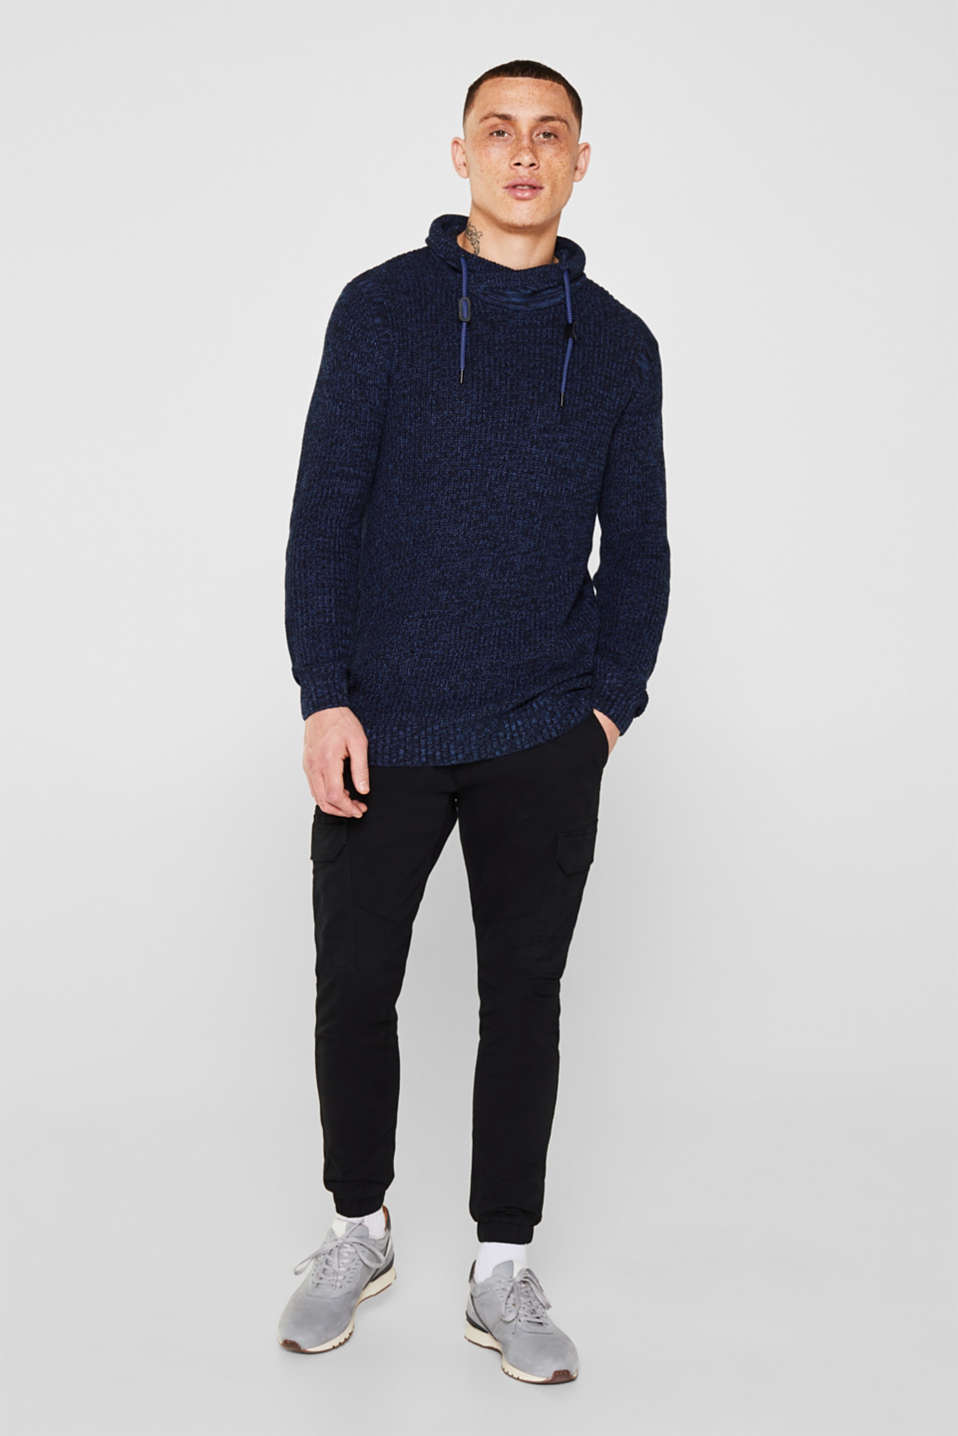 Knitted jumper with a drawstring collar, NAVY, detail image number 1